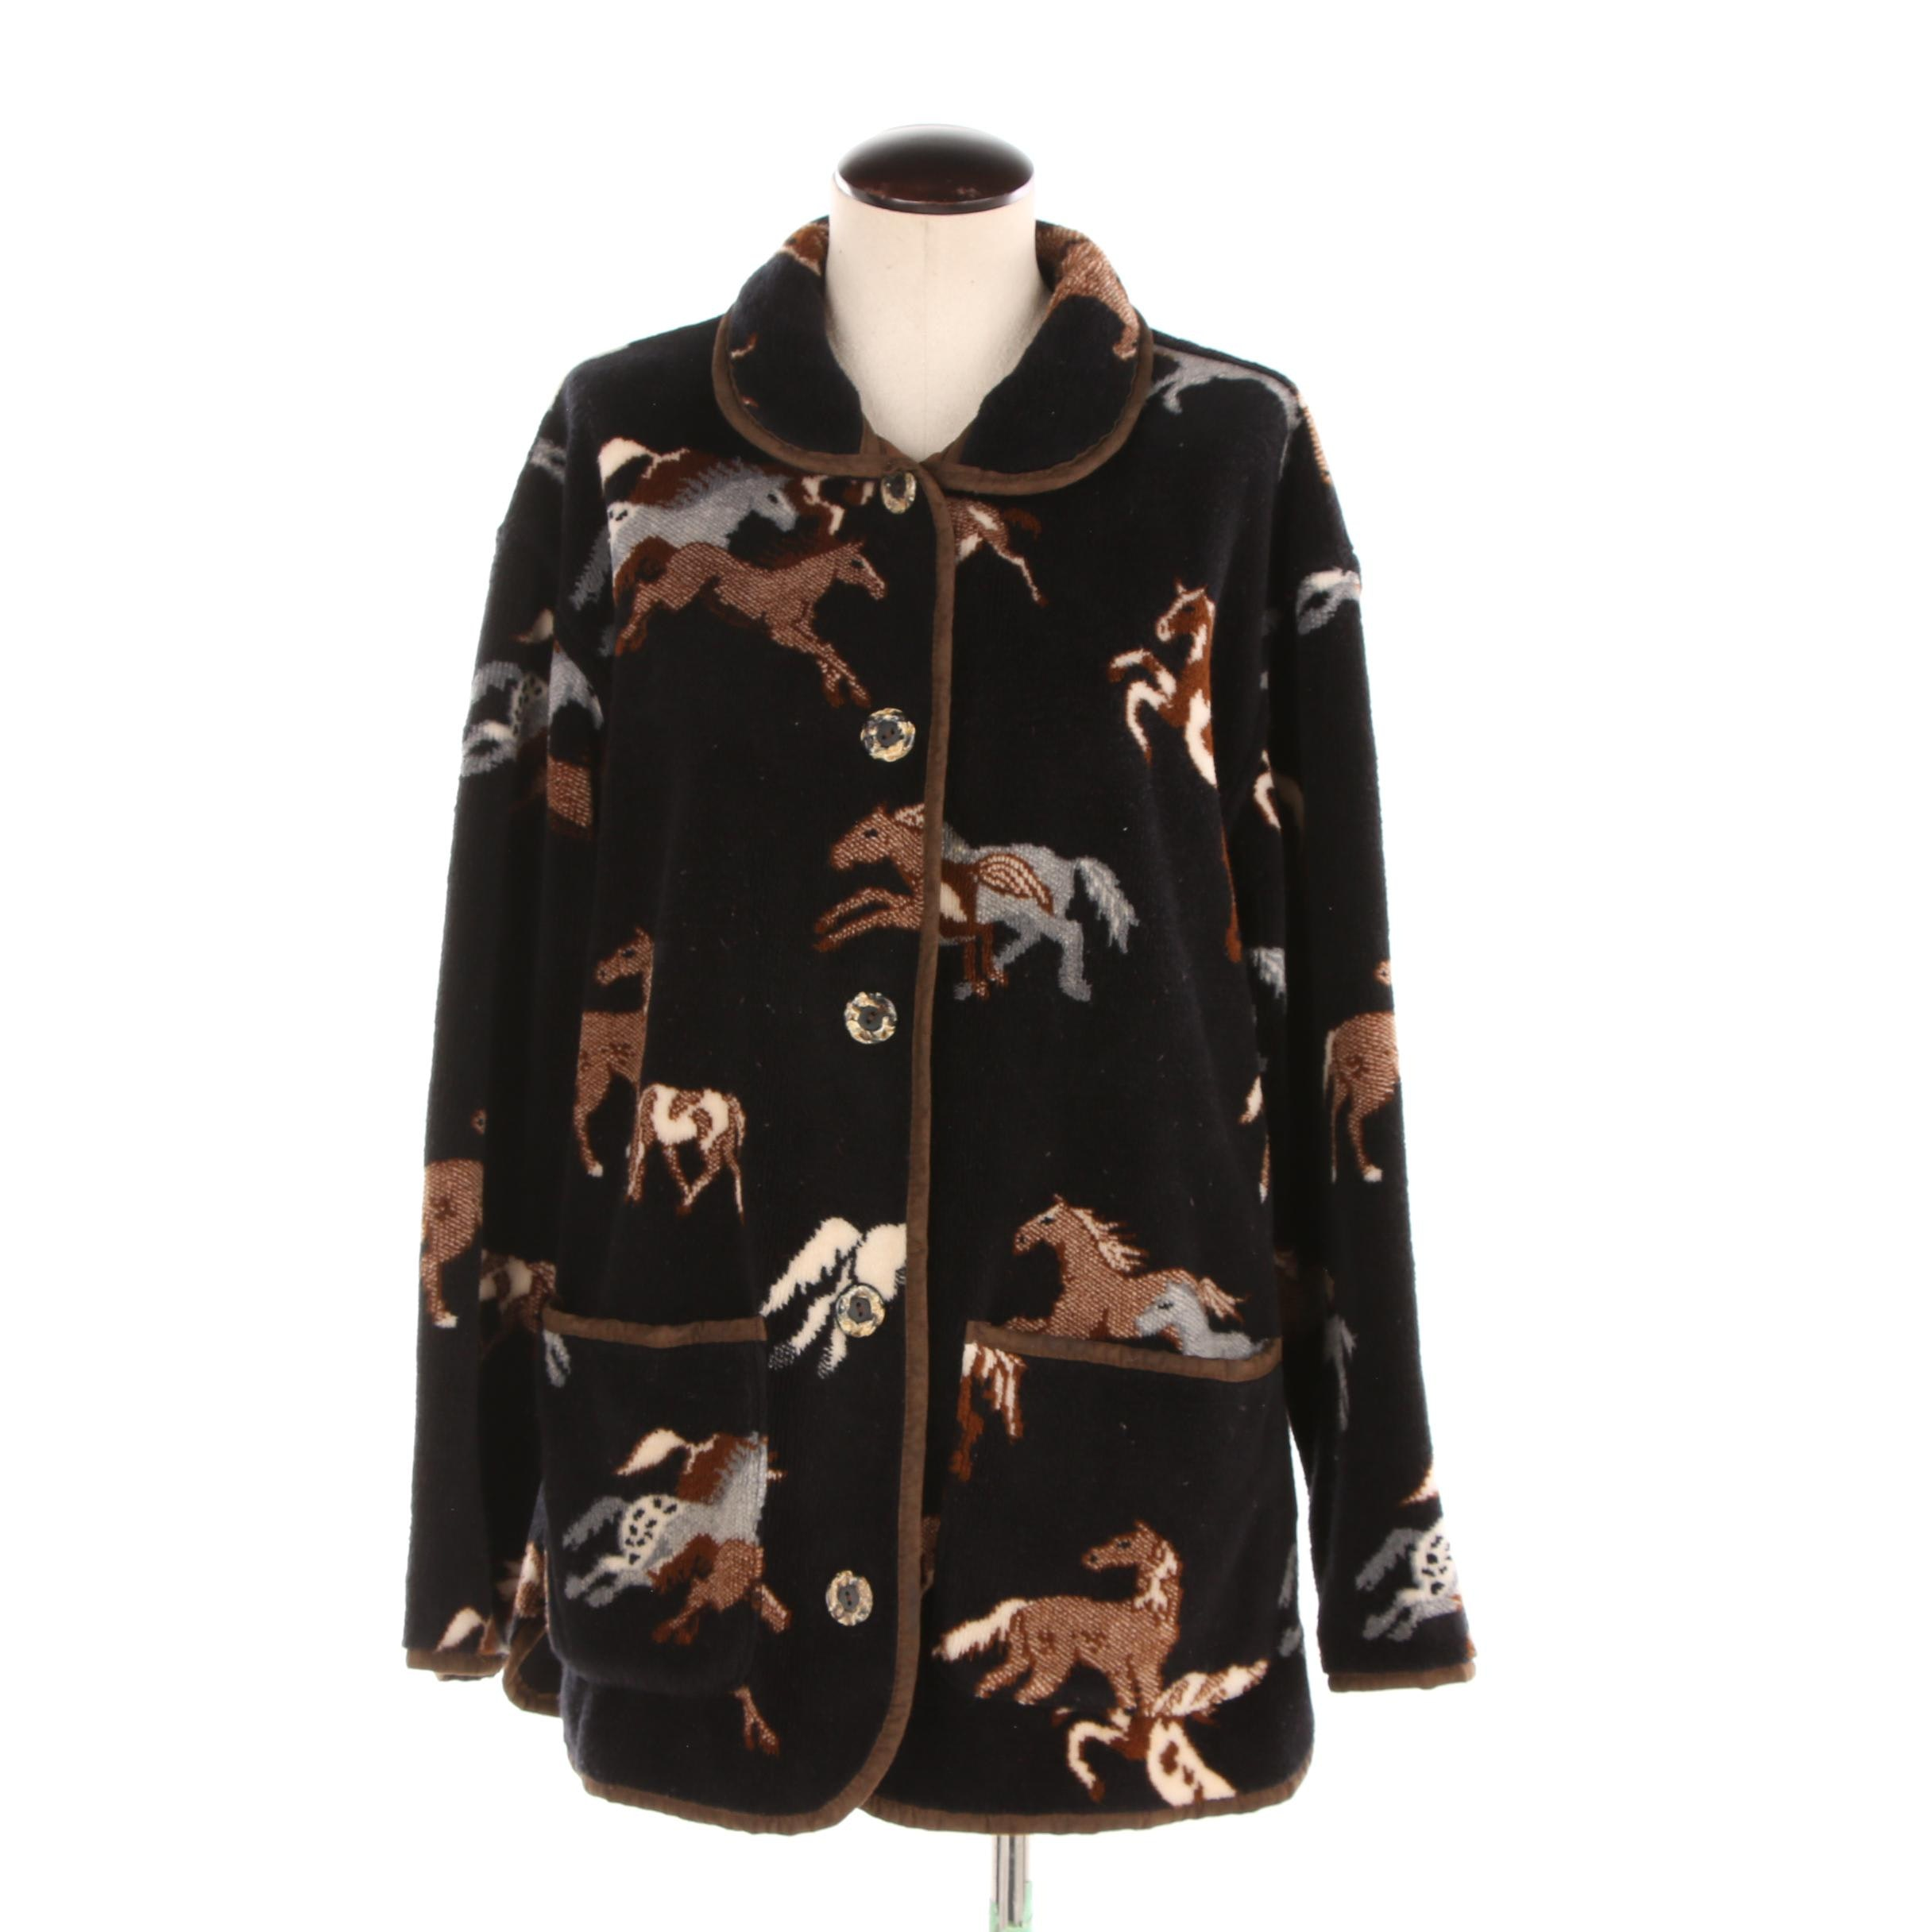 Women's Indigenous Tsunami Collection Horse Print Jacket